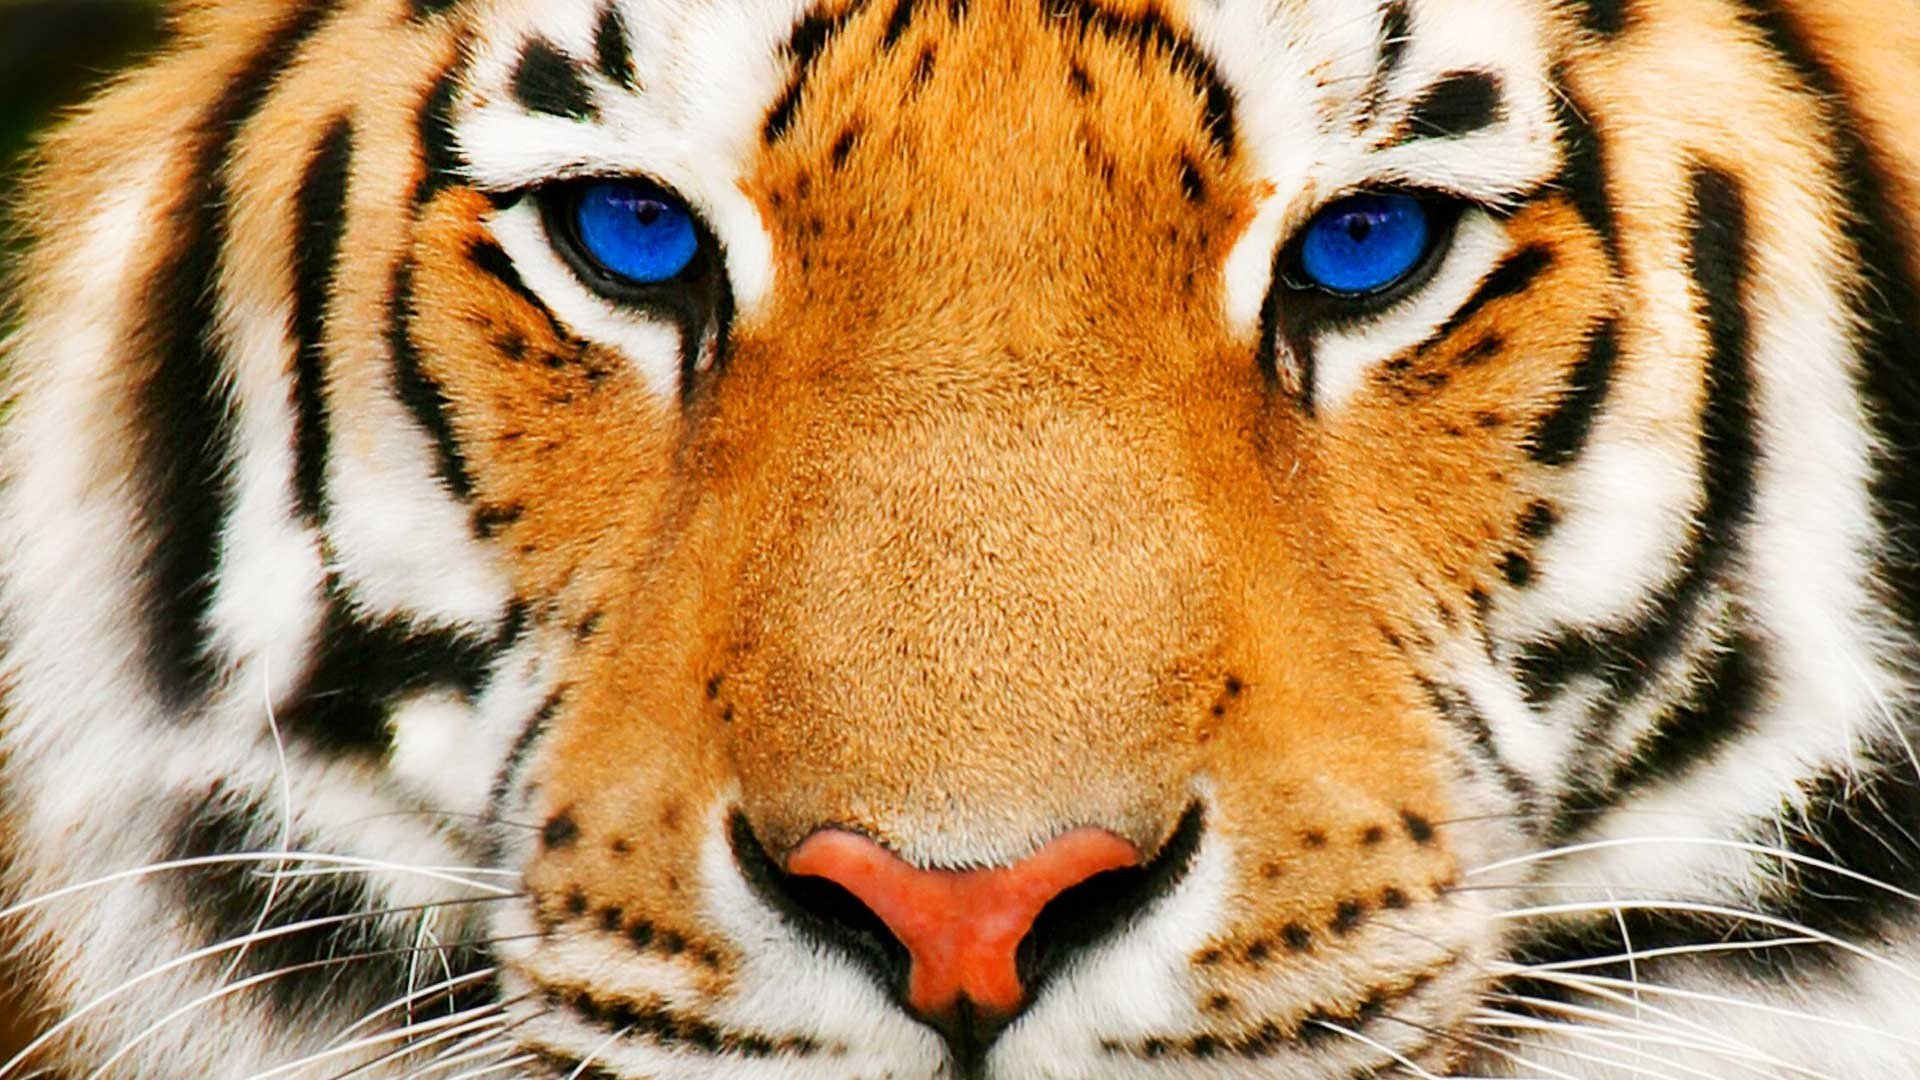 tiger face hd wallpapers | Desktop Backgrounds for Free HD